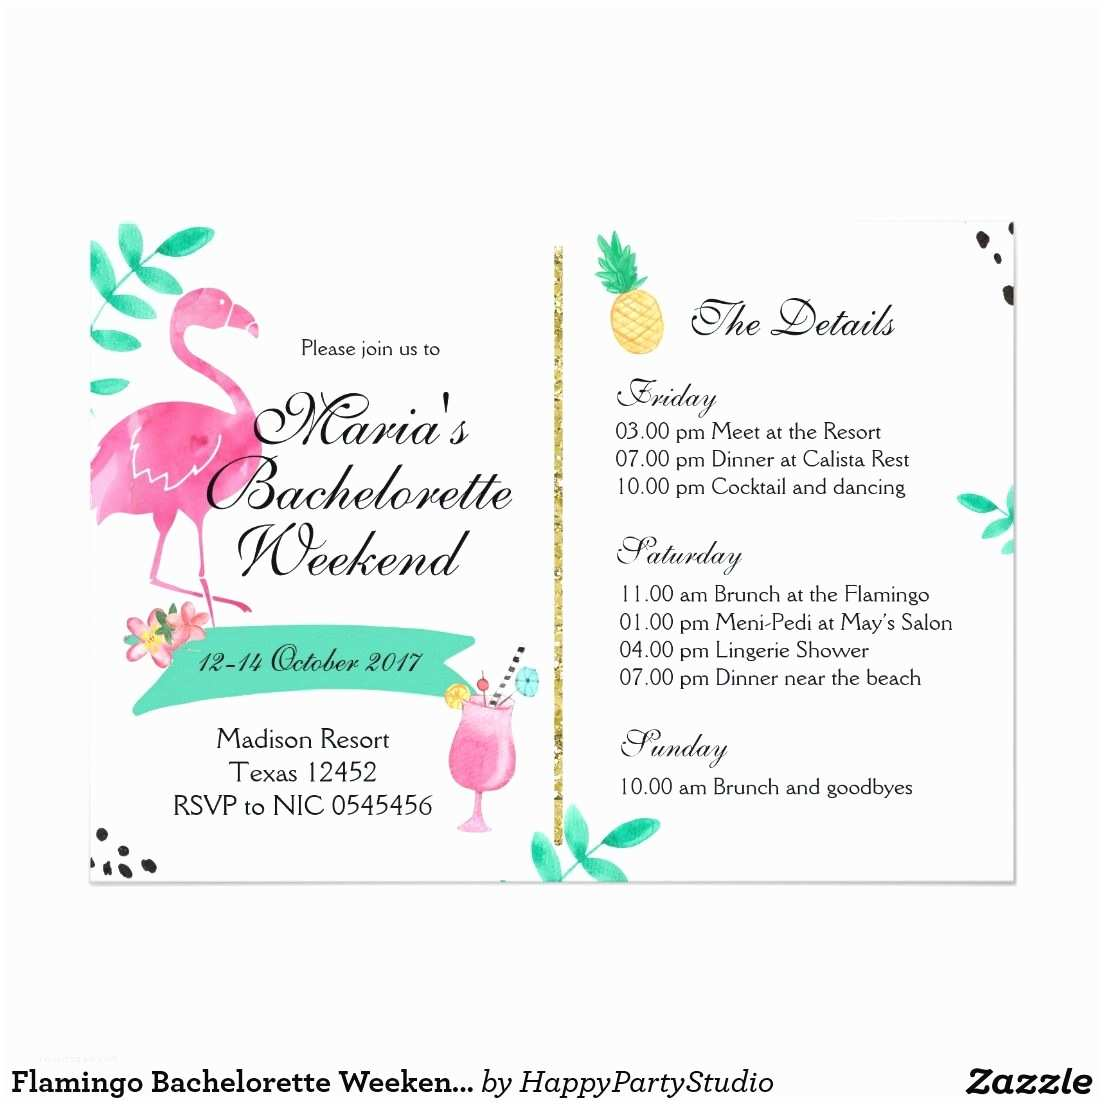 Bachelorette Party Invitations with Itinerary Flamingo Bachelorette Weekend Itinerary Invitation